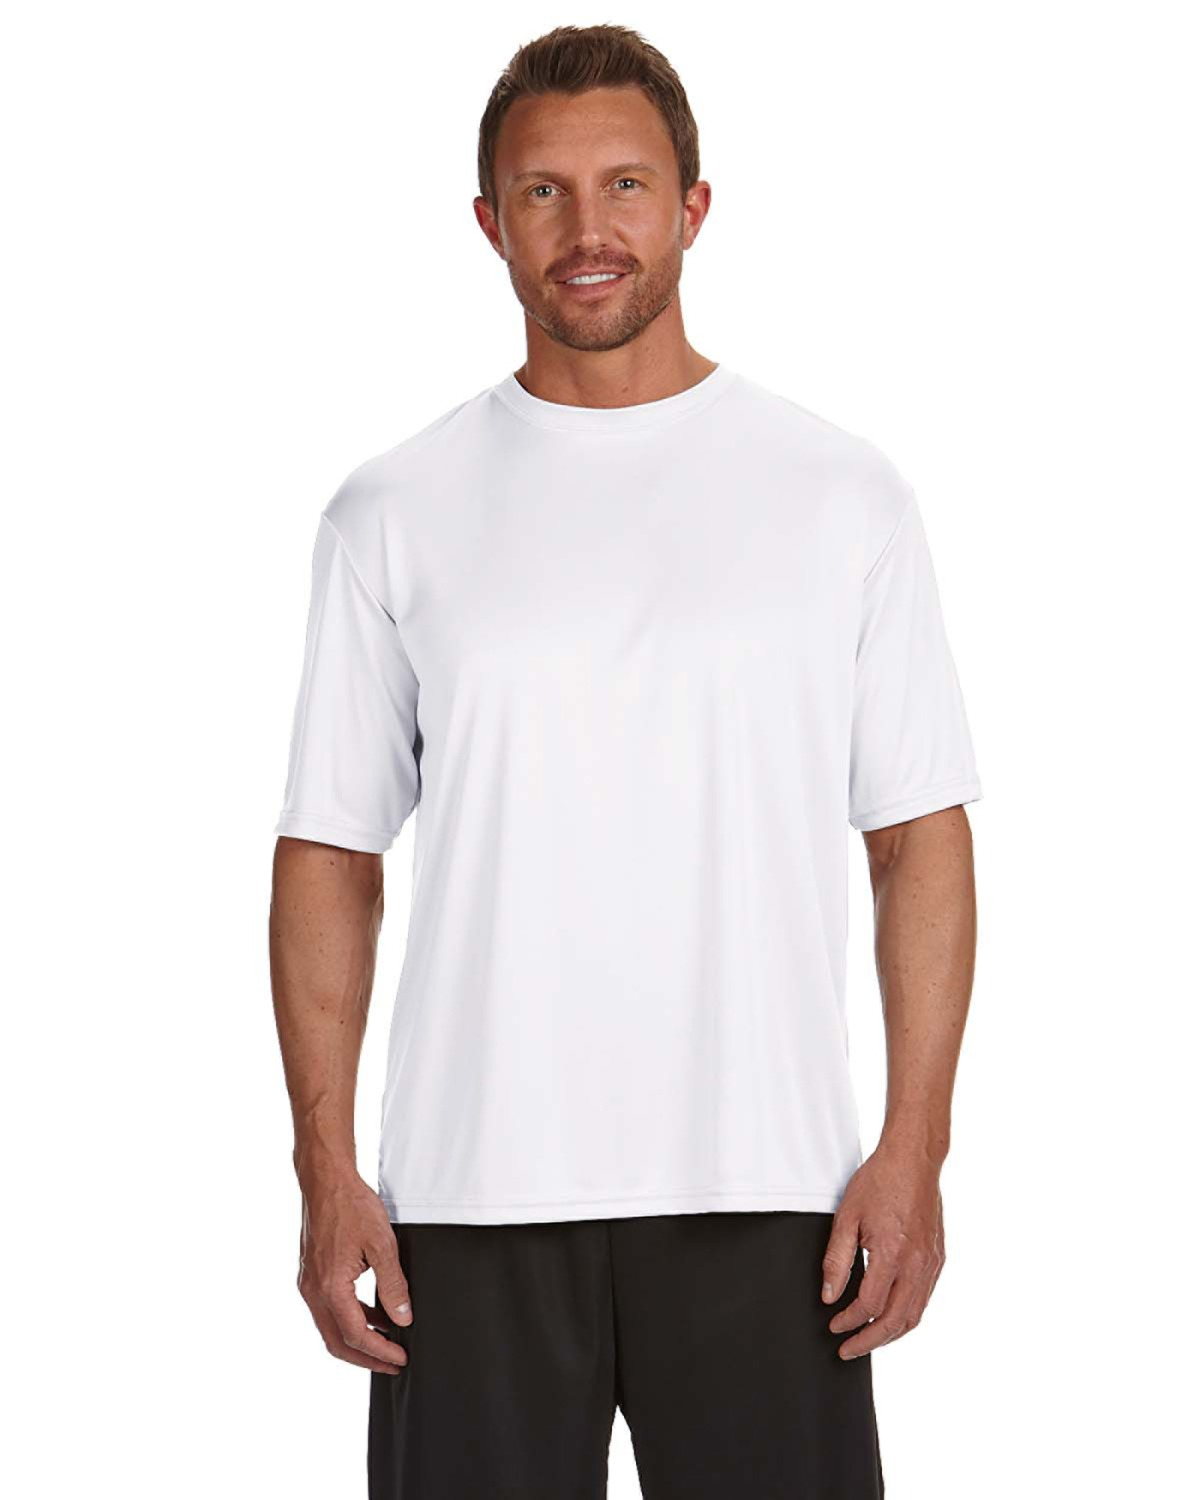 Adult Performance Marathon T-Shirt